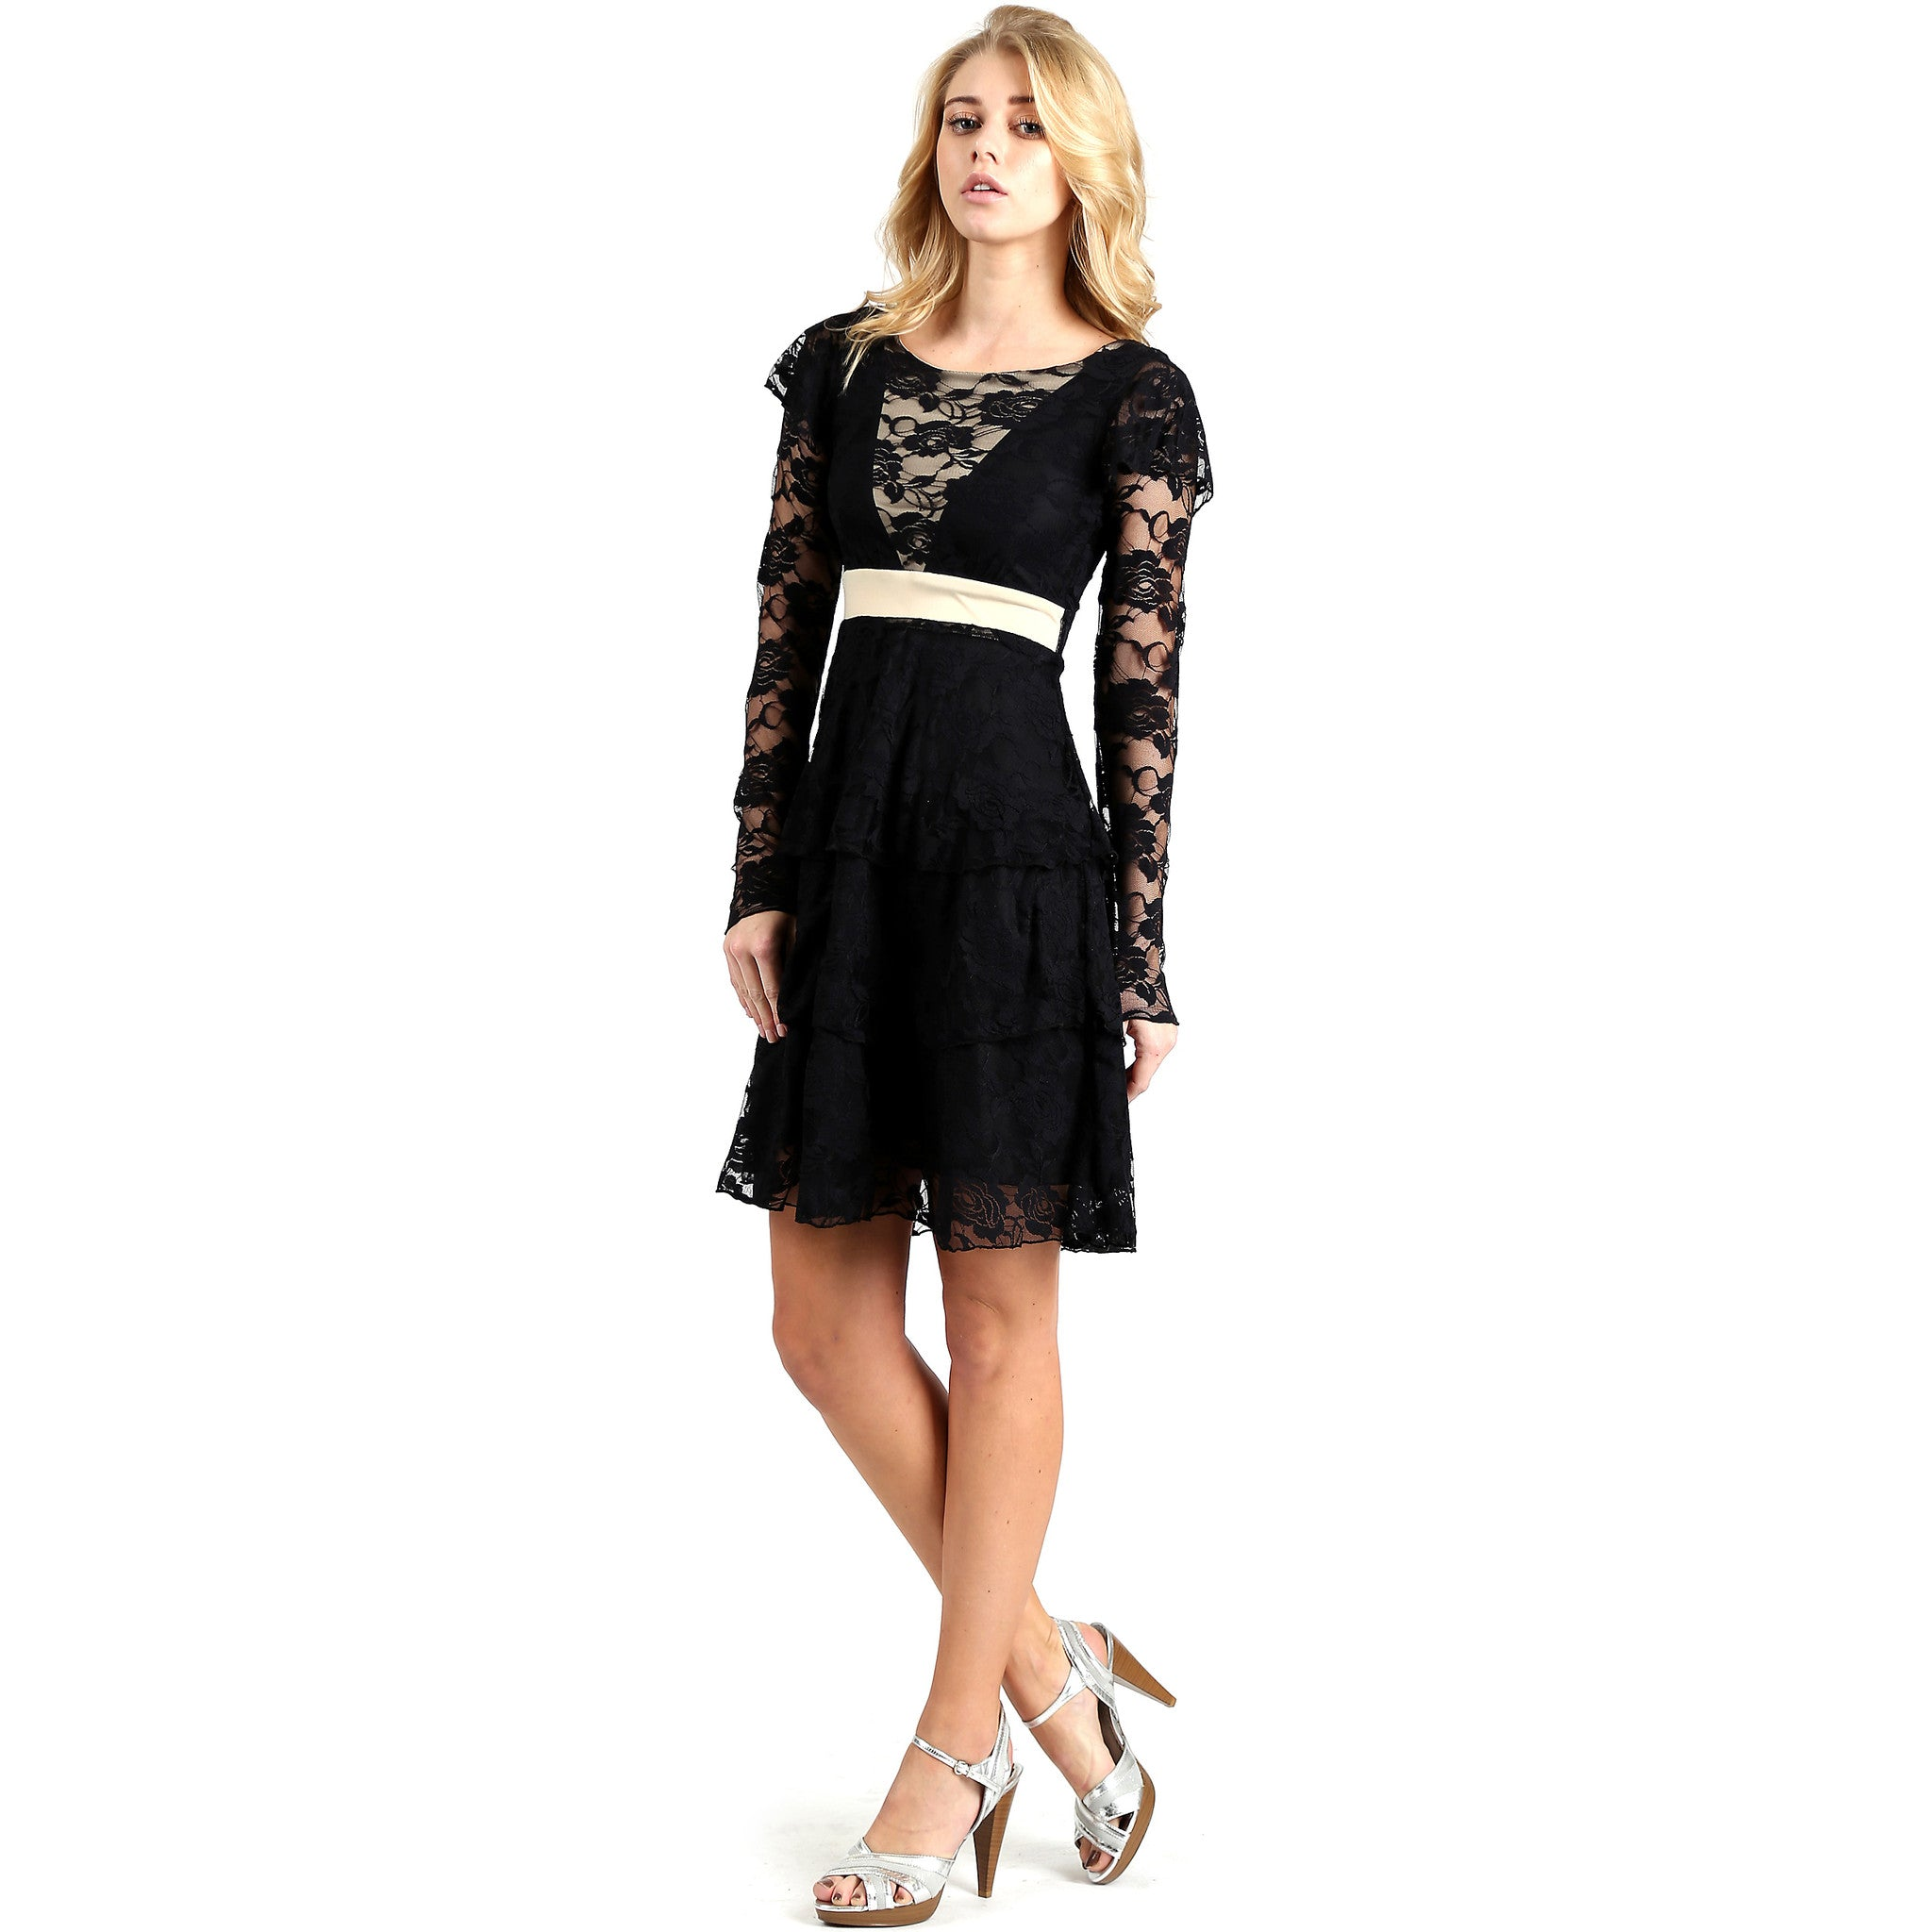 Evanese Women's Elegant Lace Cocktail Tiered Short Skirt Dress with Long Sleeves XS, Black